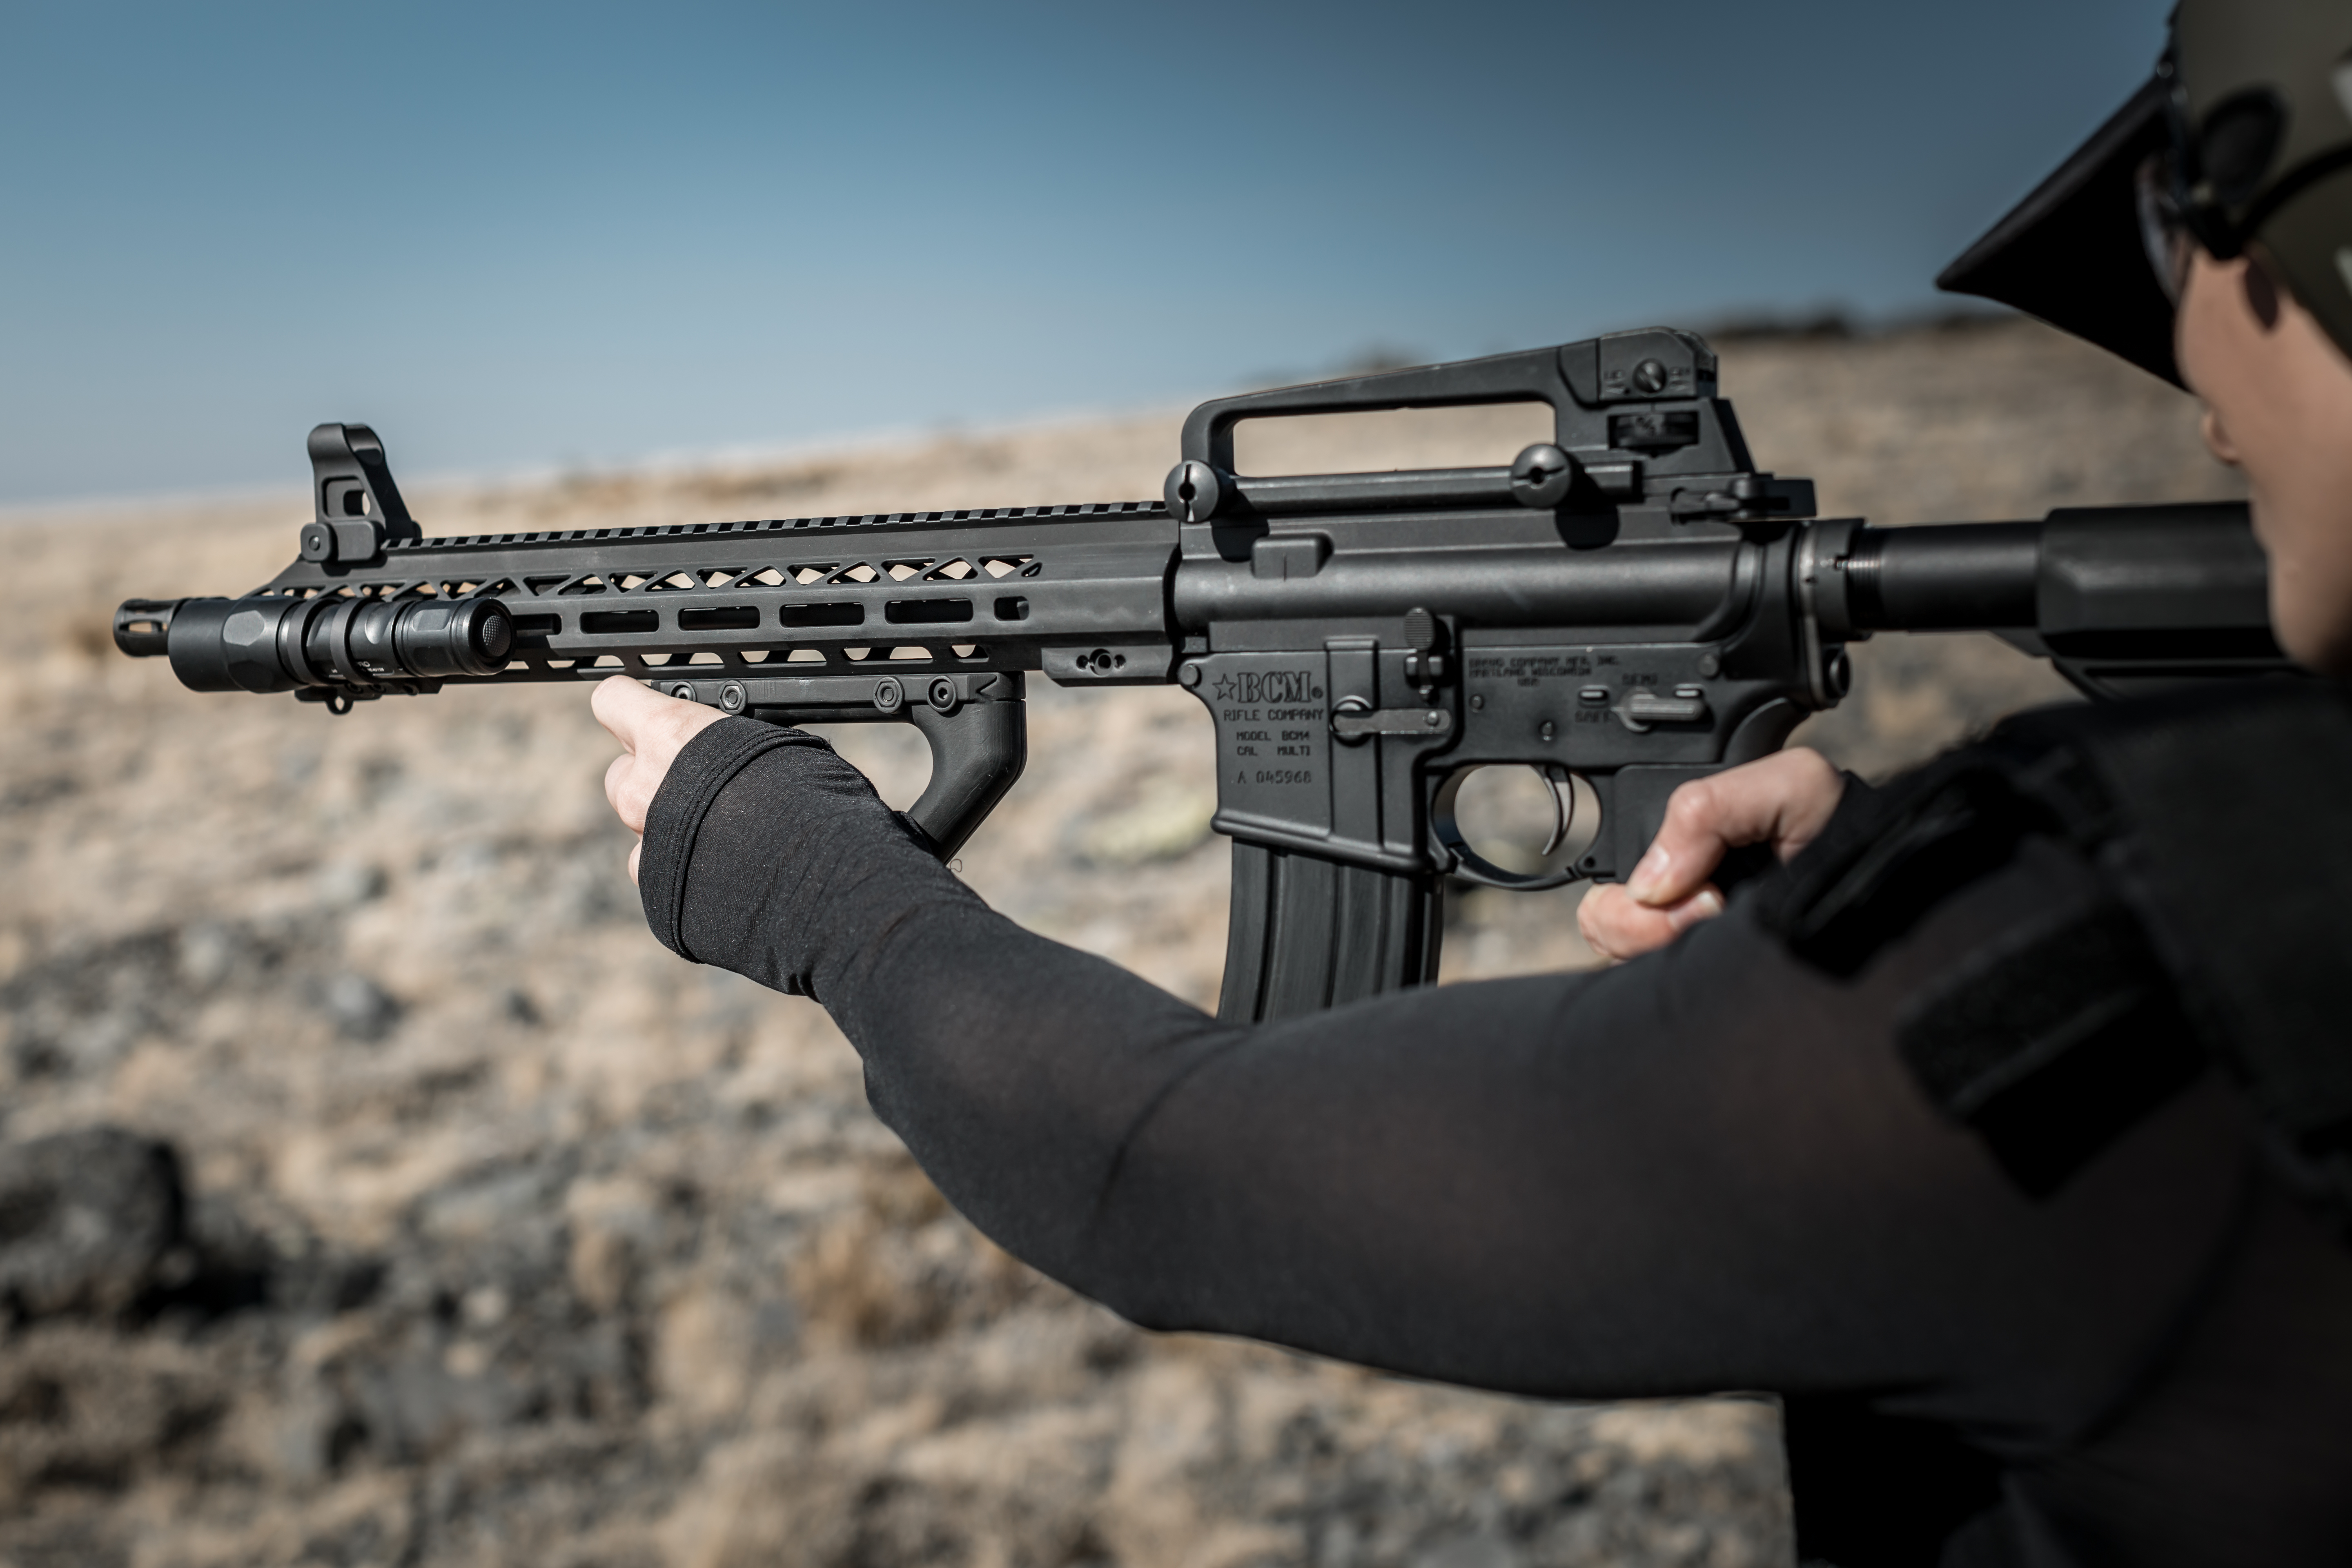 NEW Pyramid™ free float handguards for AR-15 rifles and carbines